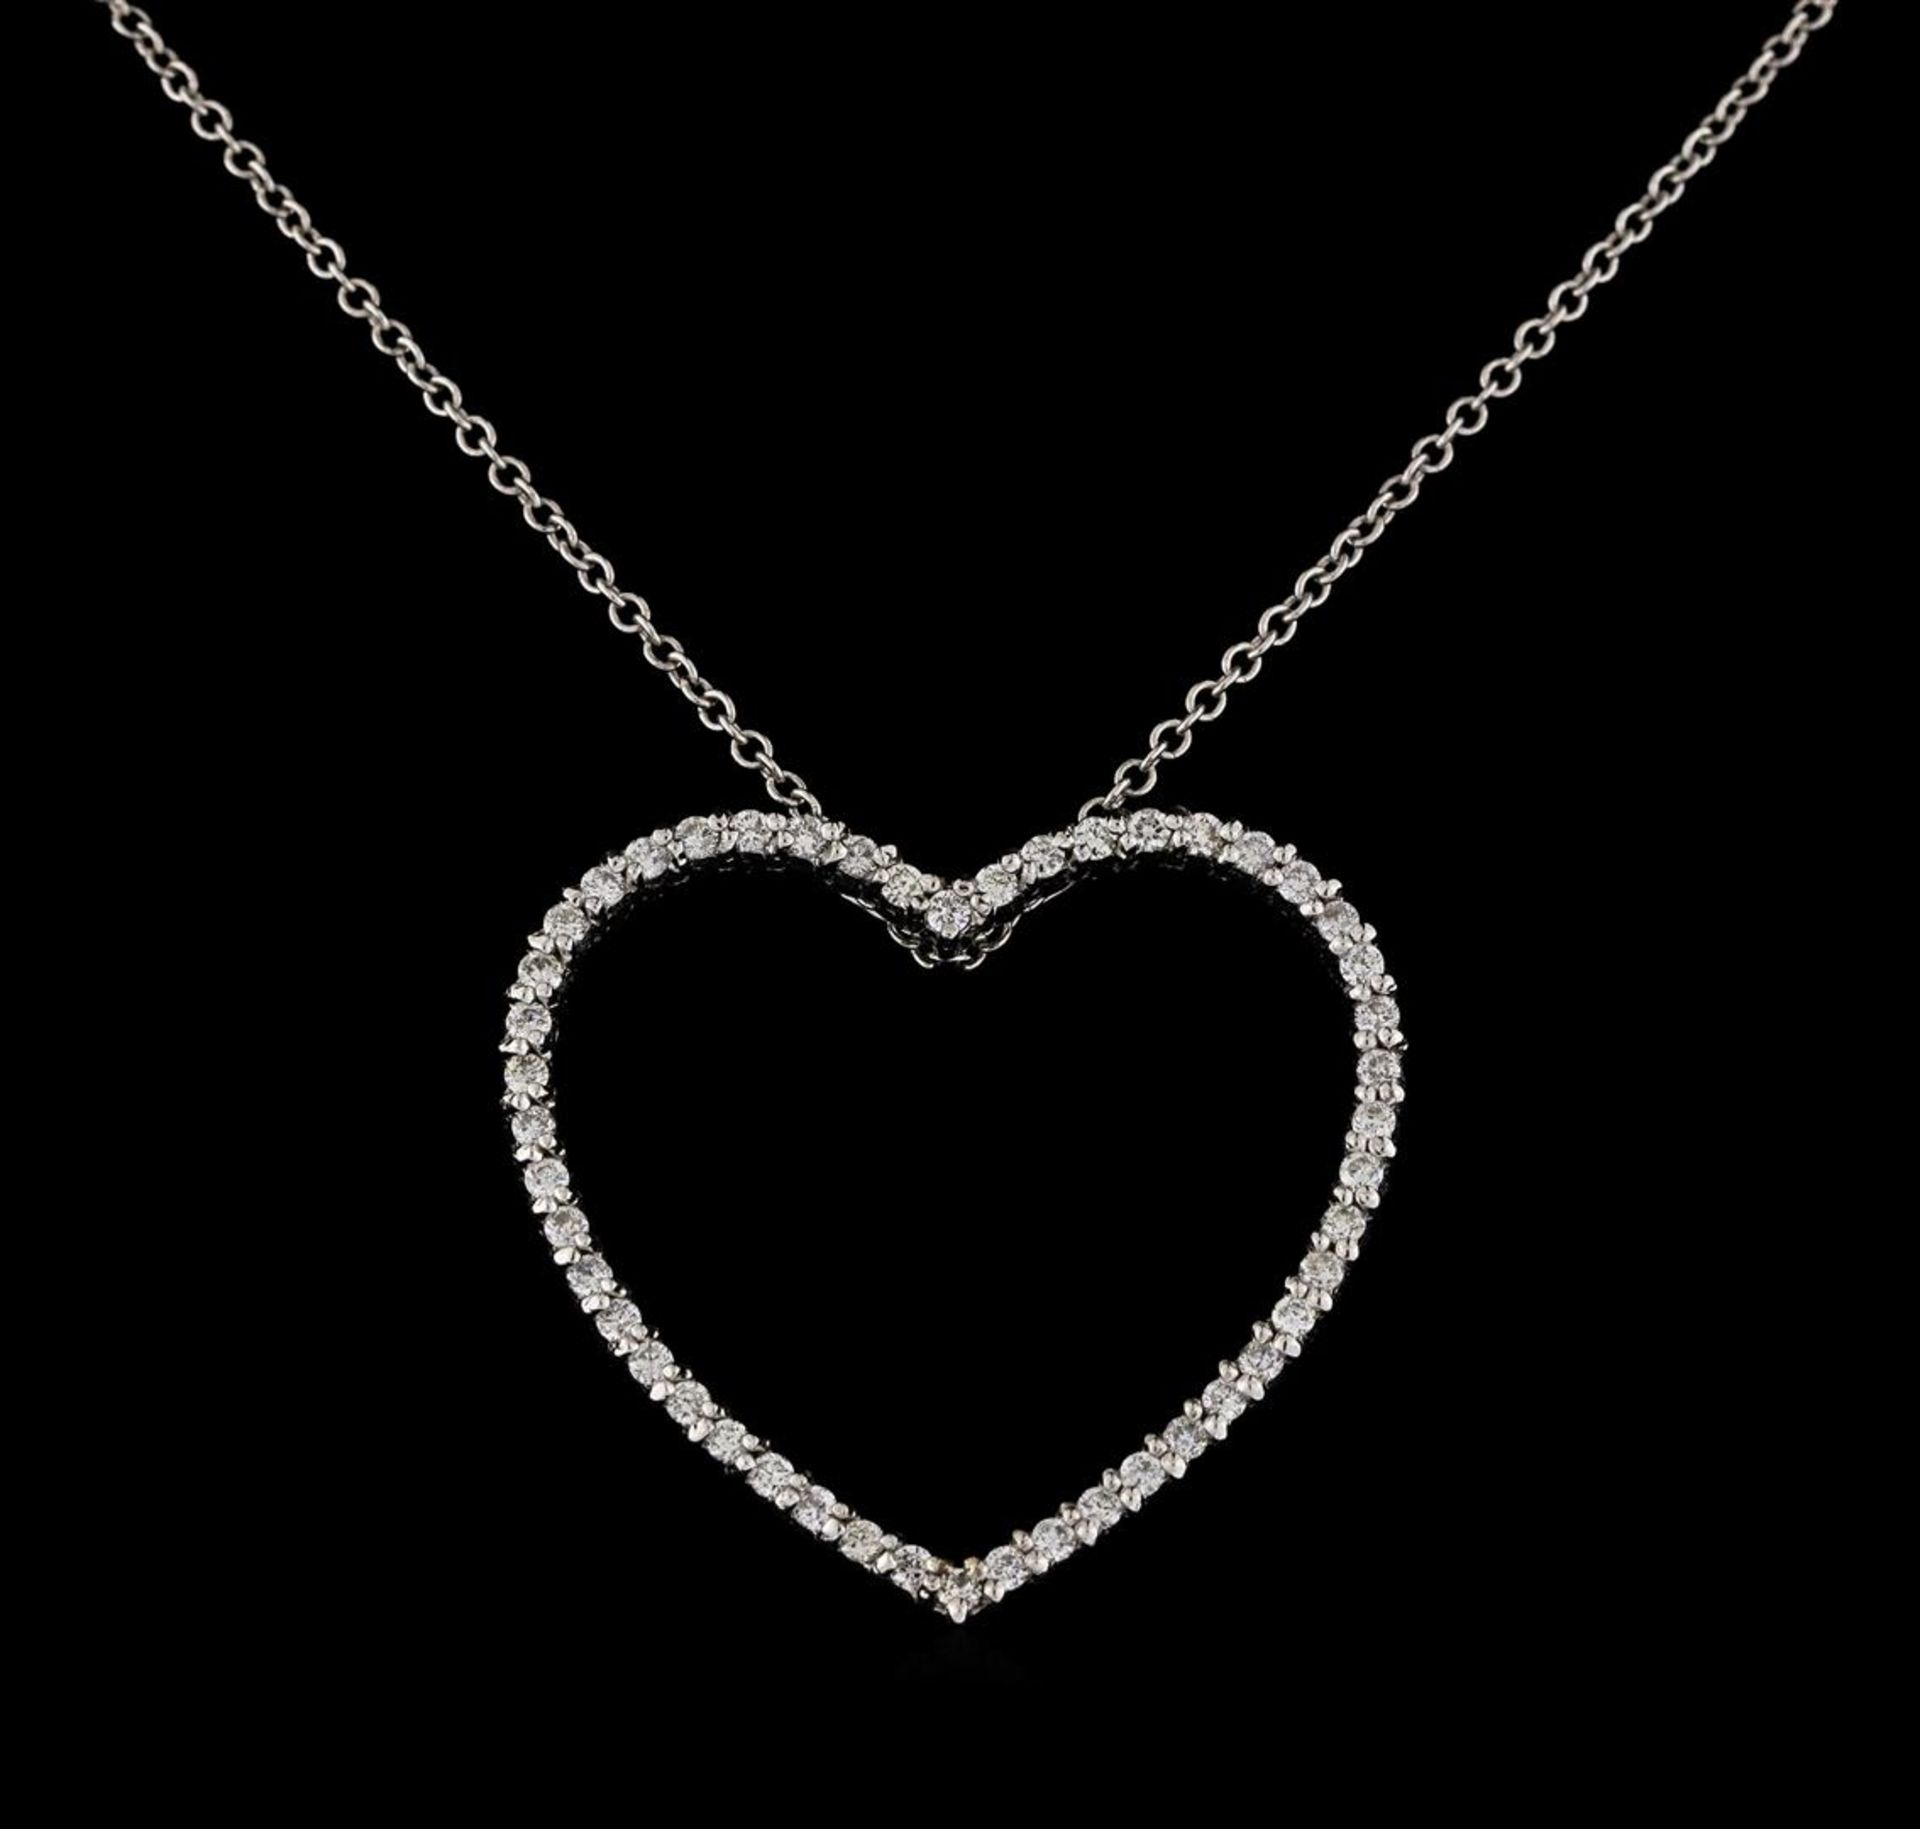 0.48 ctw Diamond Pendant With Chain - 14KT White Gold - Image 2 of 2